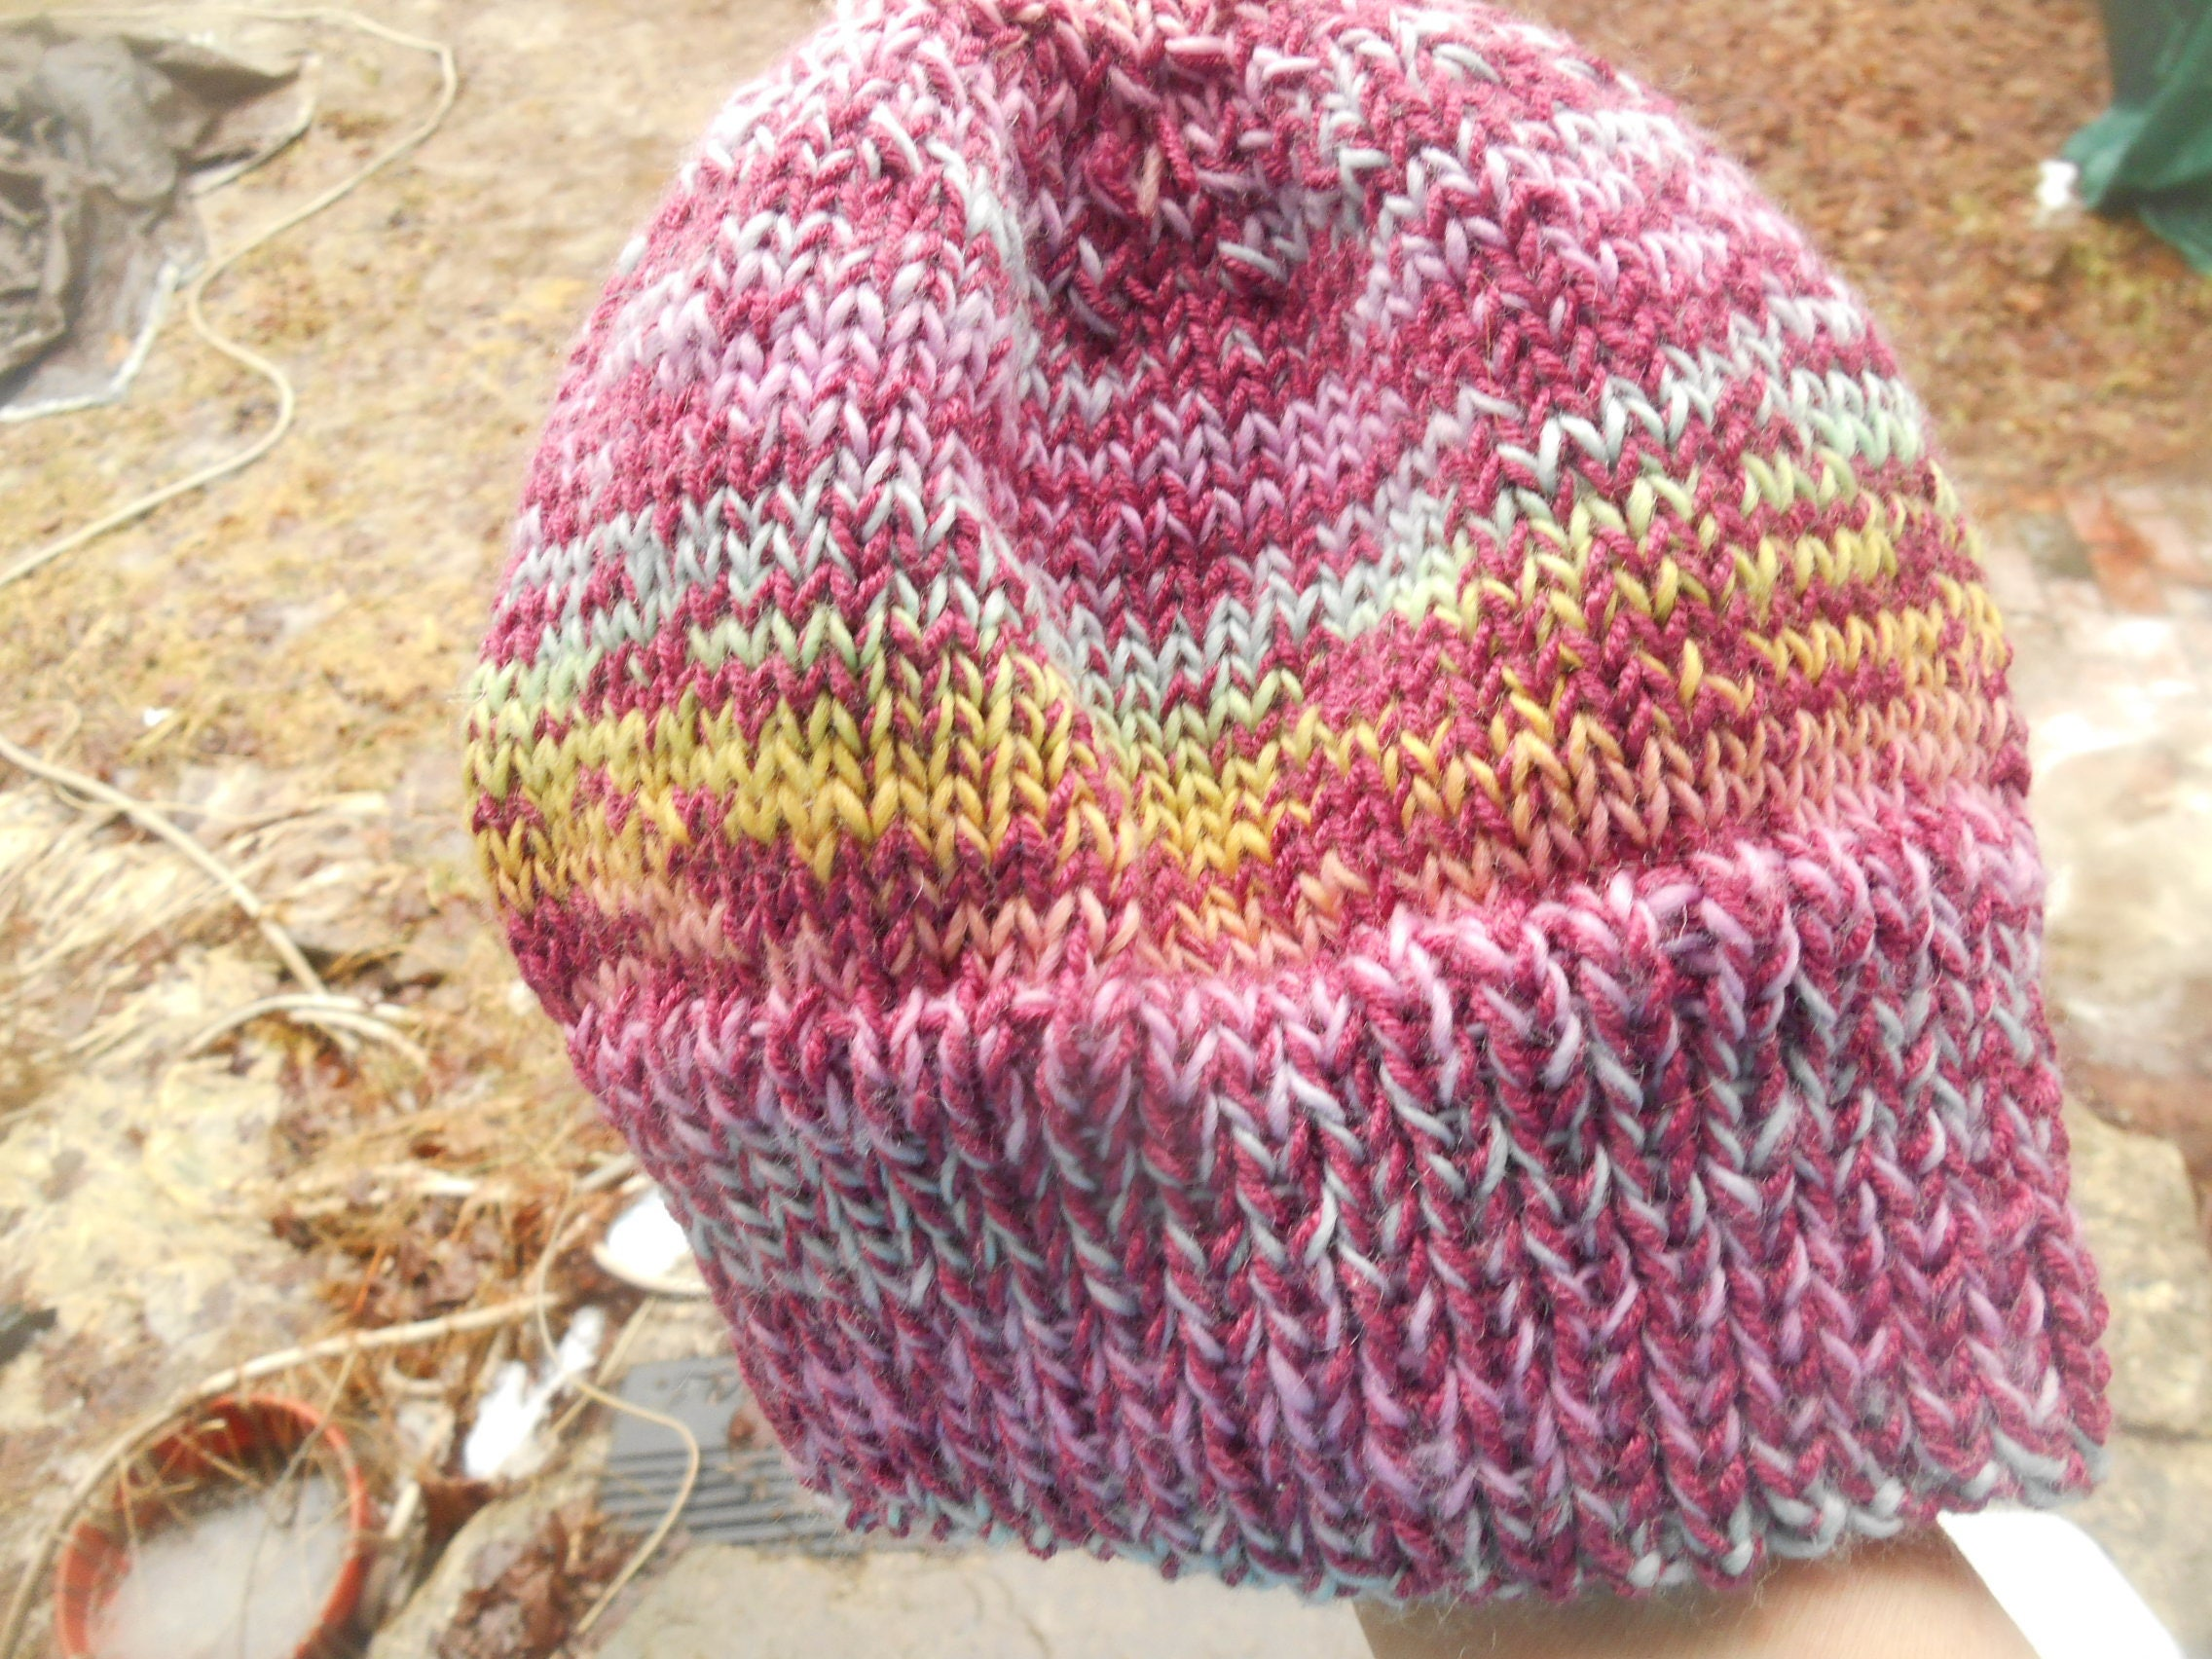 bb3f8d89530 Hand knit knitted hat watchcap skull cap beanie wool bamboo